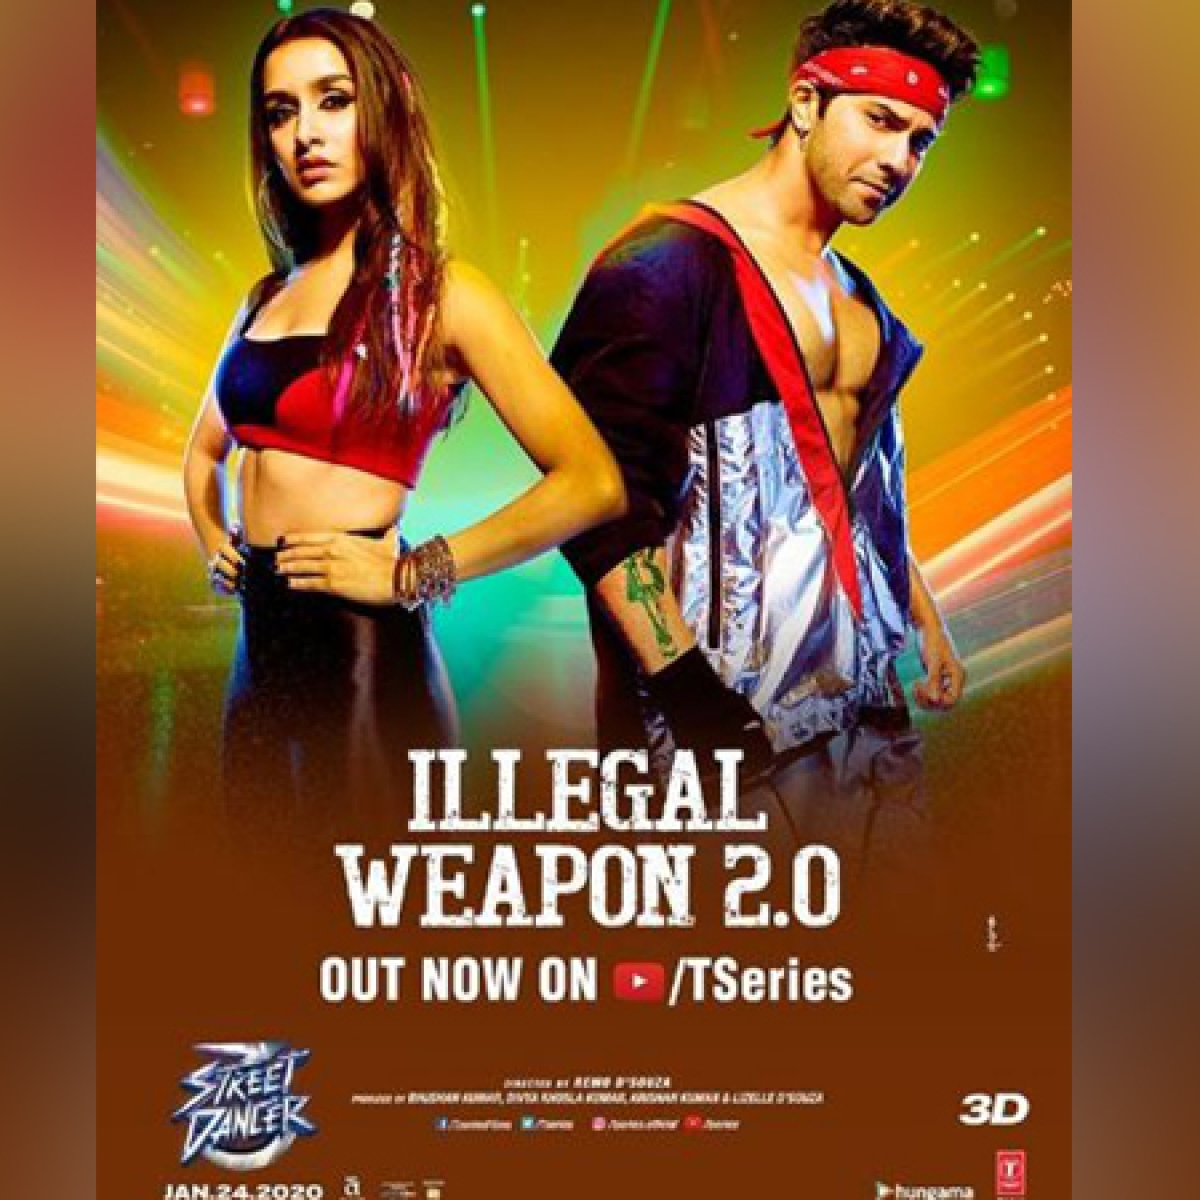 Street Dancer 3D: Shraddha Kapoor, Varun Dhawan gear up for dance face-off in 'Illegal Weapon 2.0'